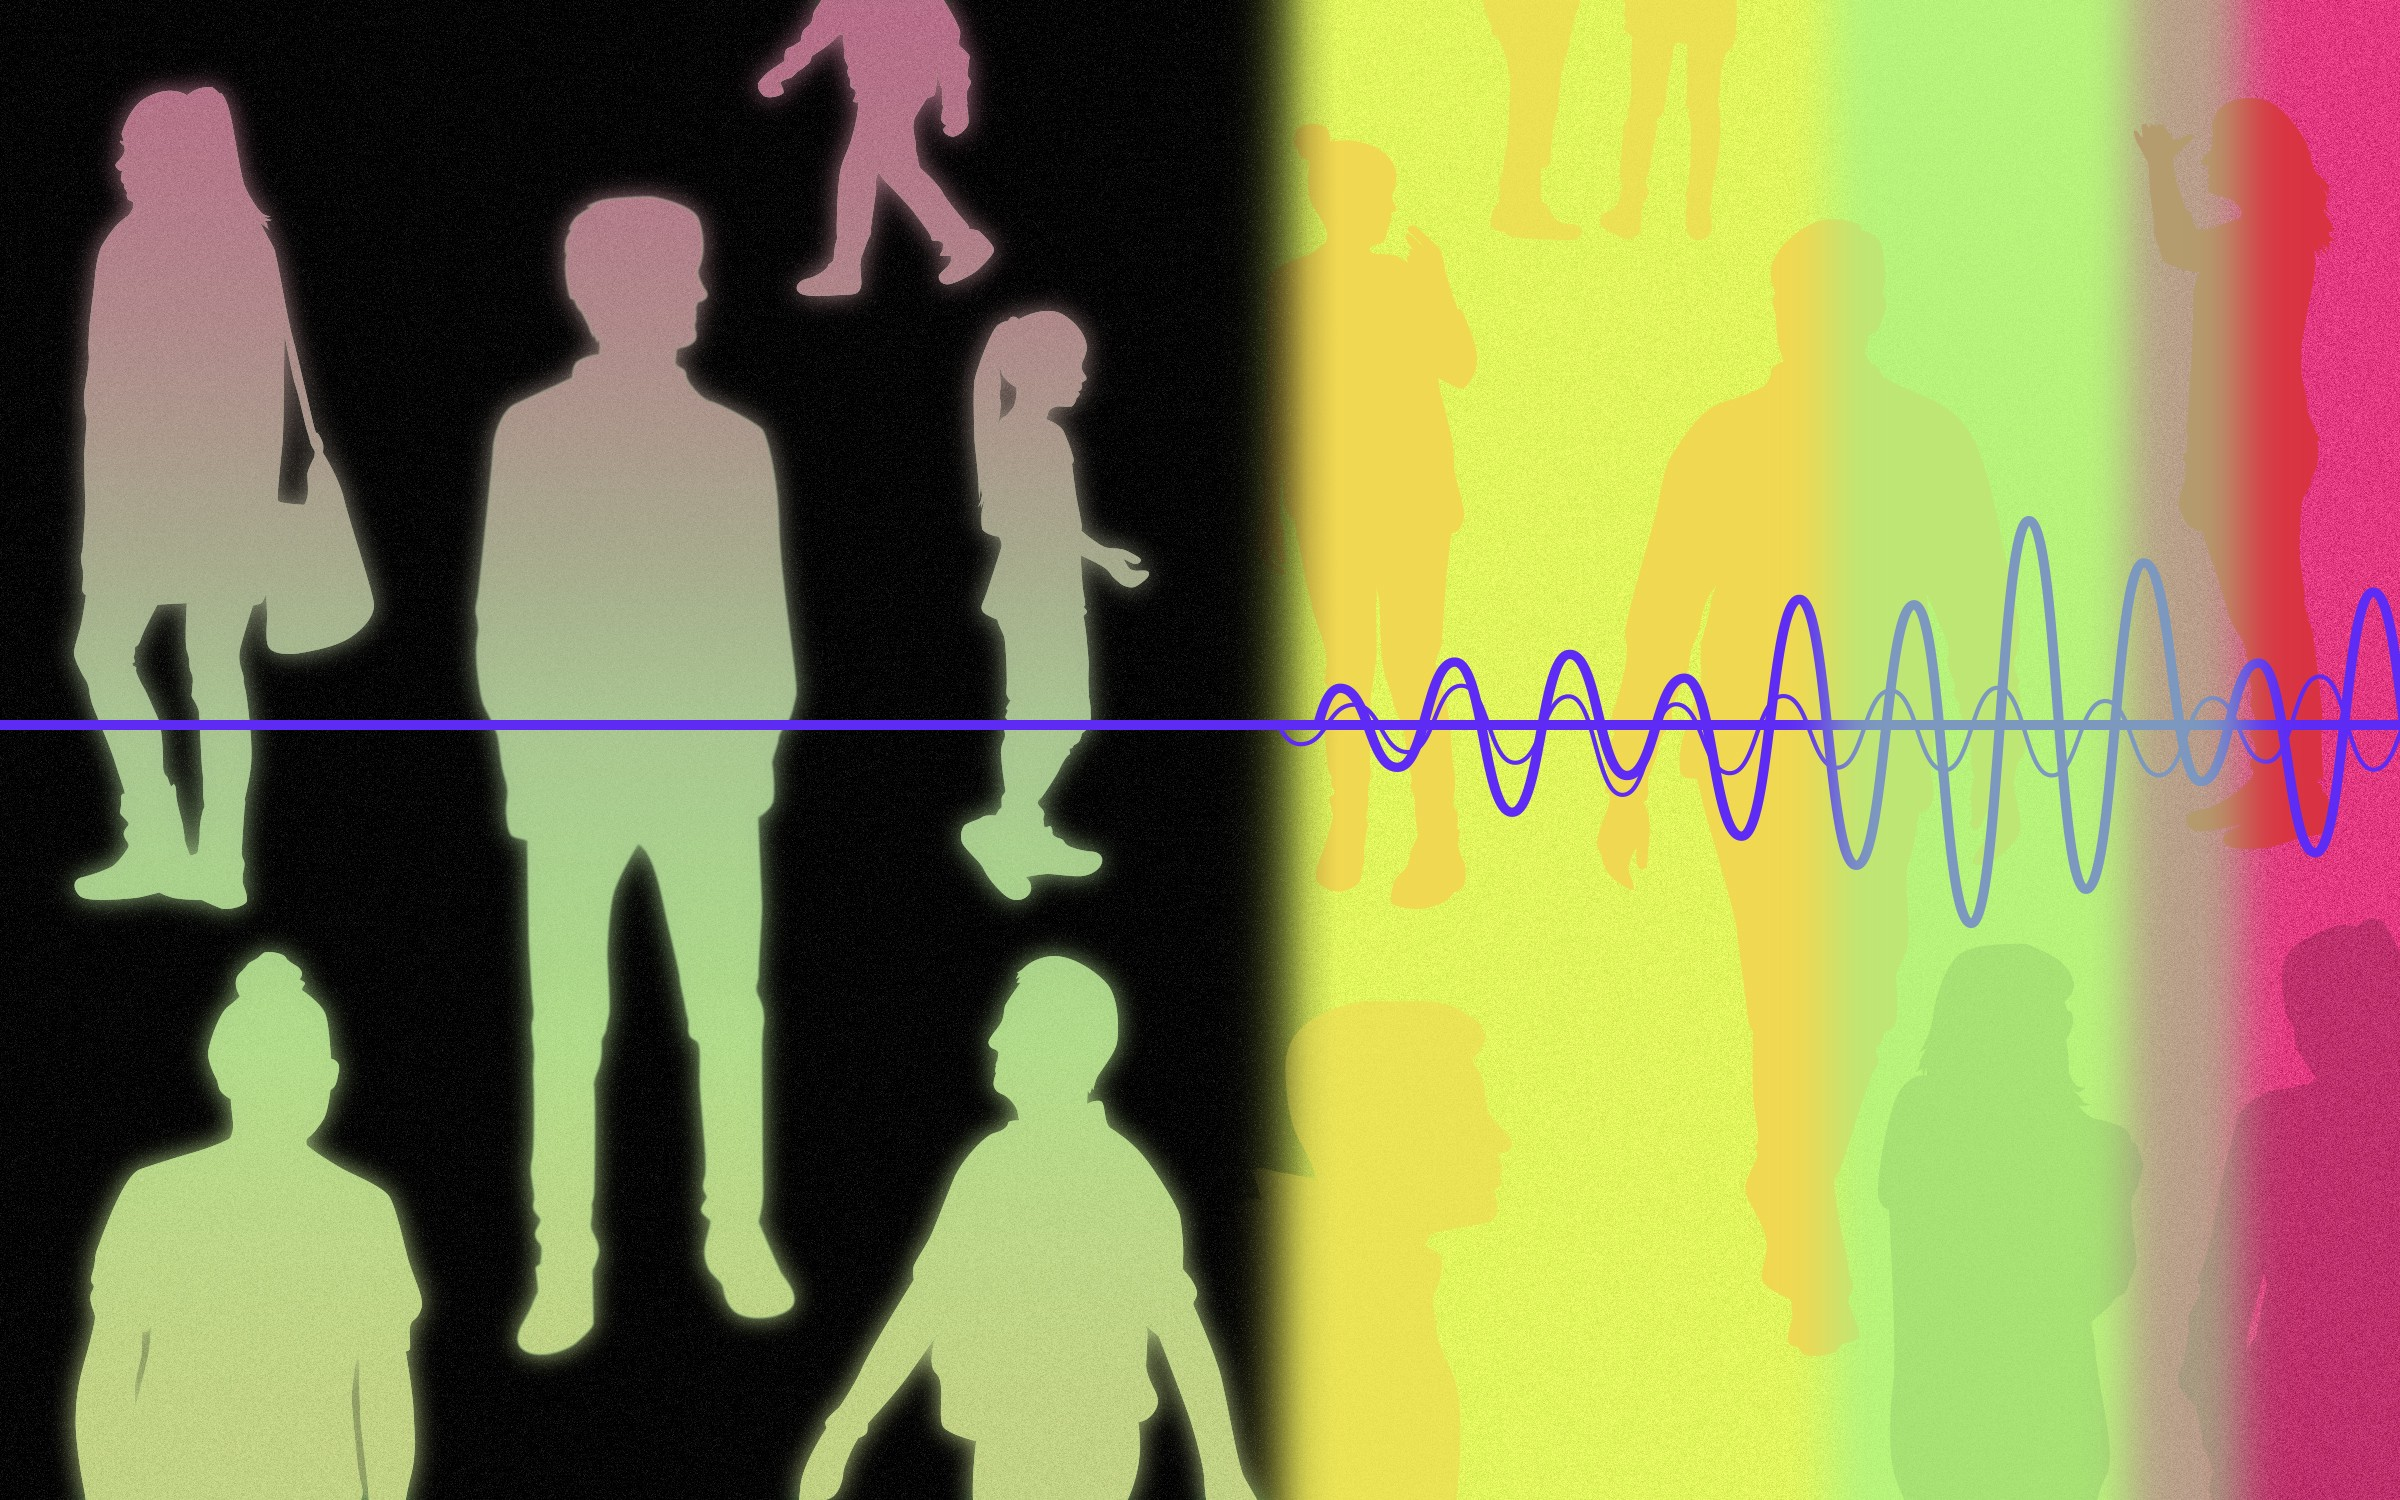 An illustration with audio waves juxtaposed over silhouettes of many different people.